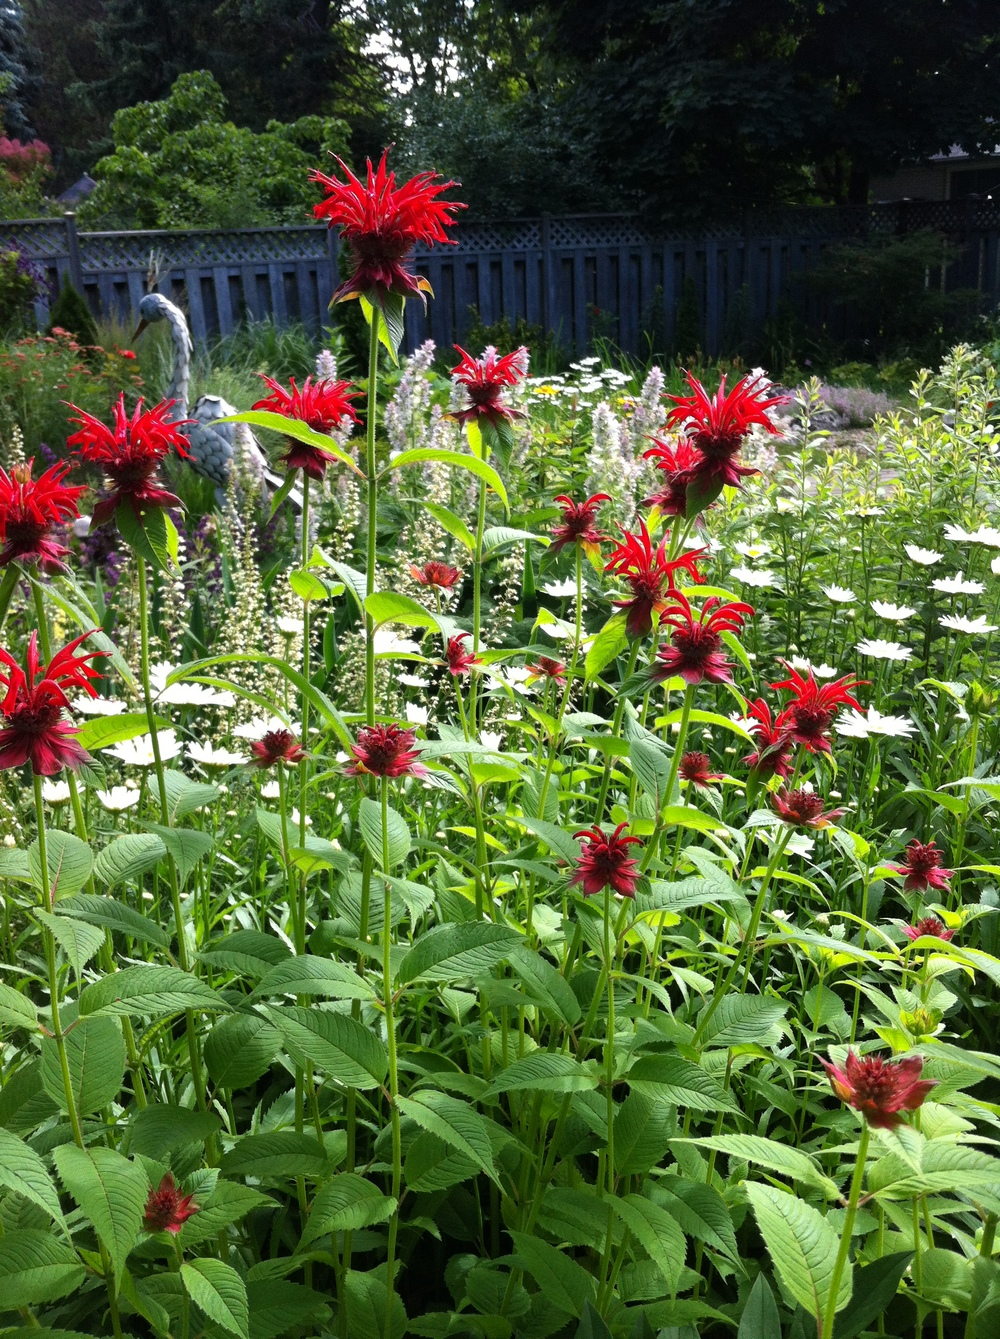 To attract bees and butterflies to your garden, plant some of their favourites, like this red bee balm (Monarda didyma)